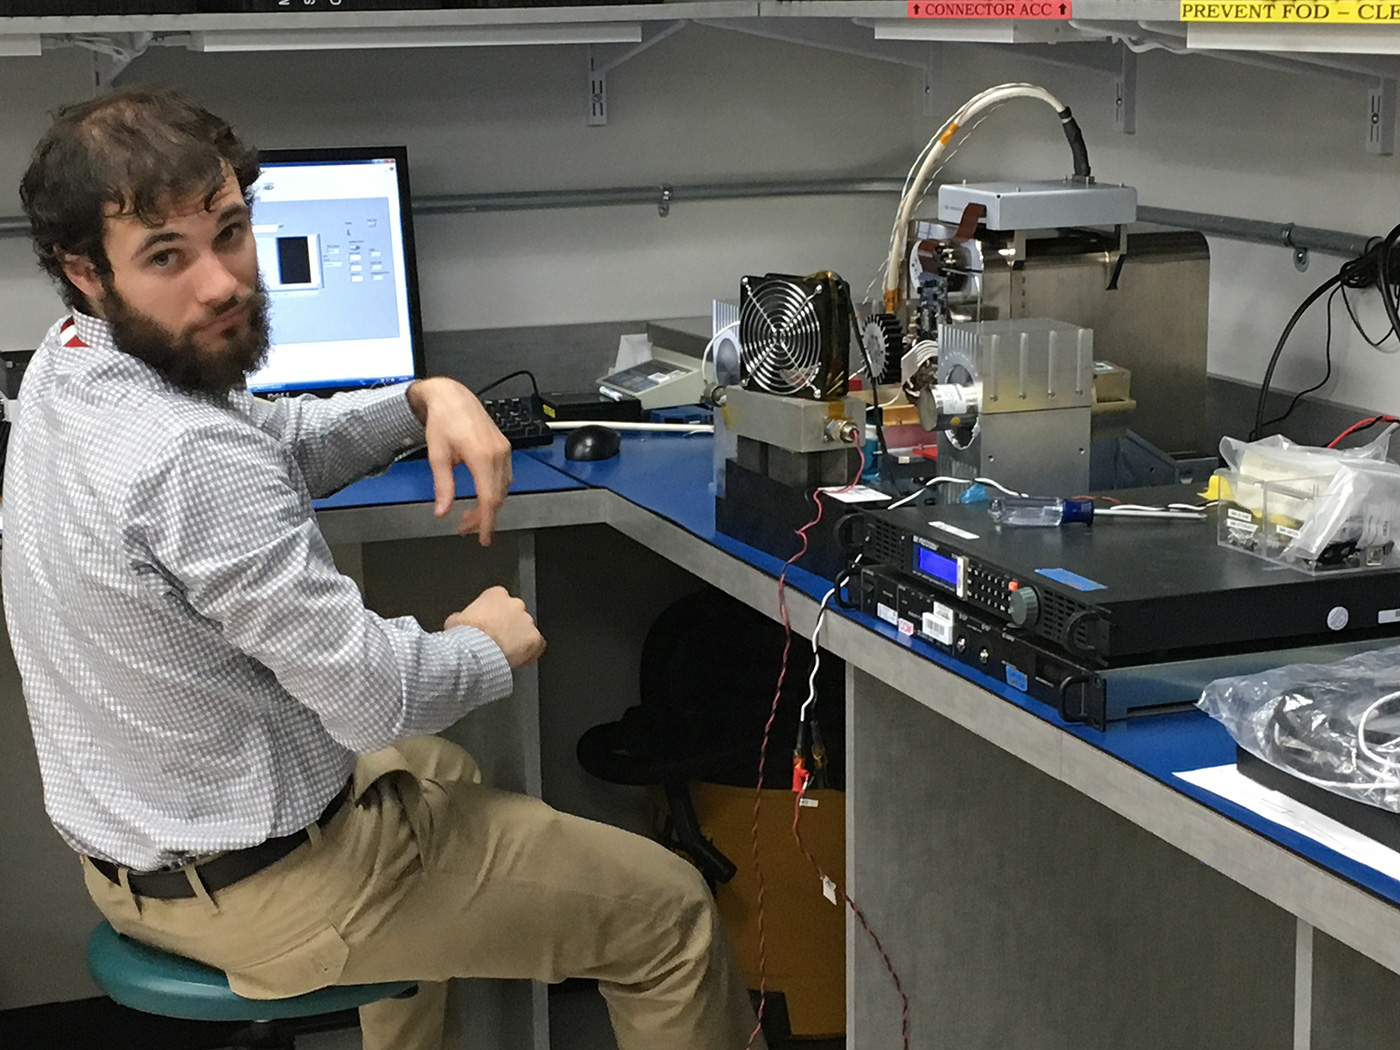 Sam Fingerman, LoCSST staff member, is shown here at BAE Systems testing the control software for the instrument for the MISTIC WINDS project.